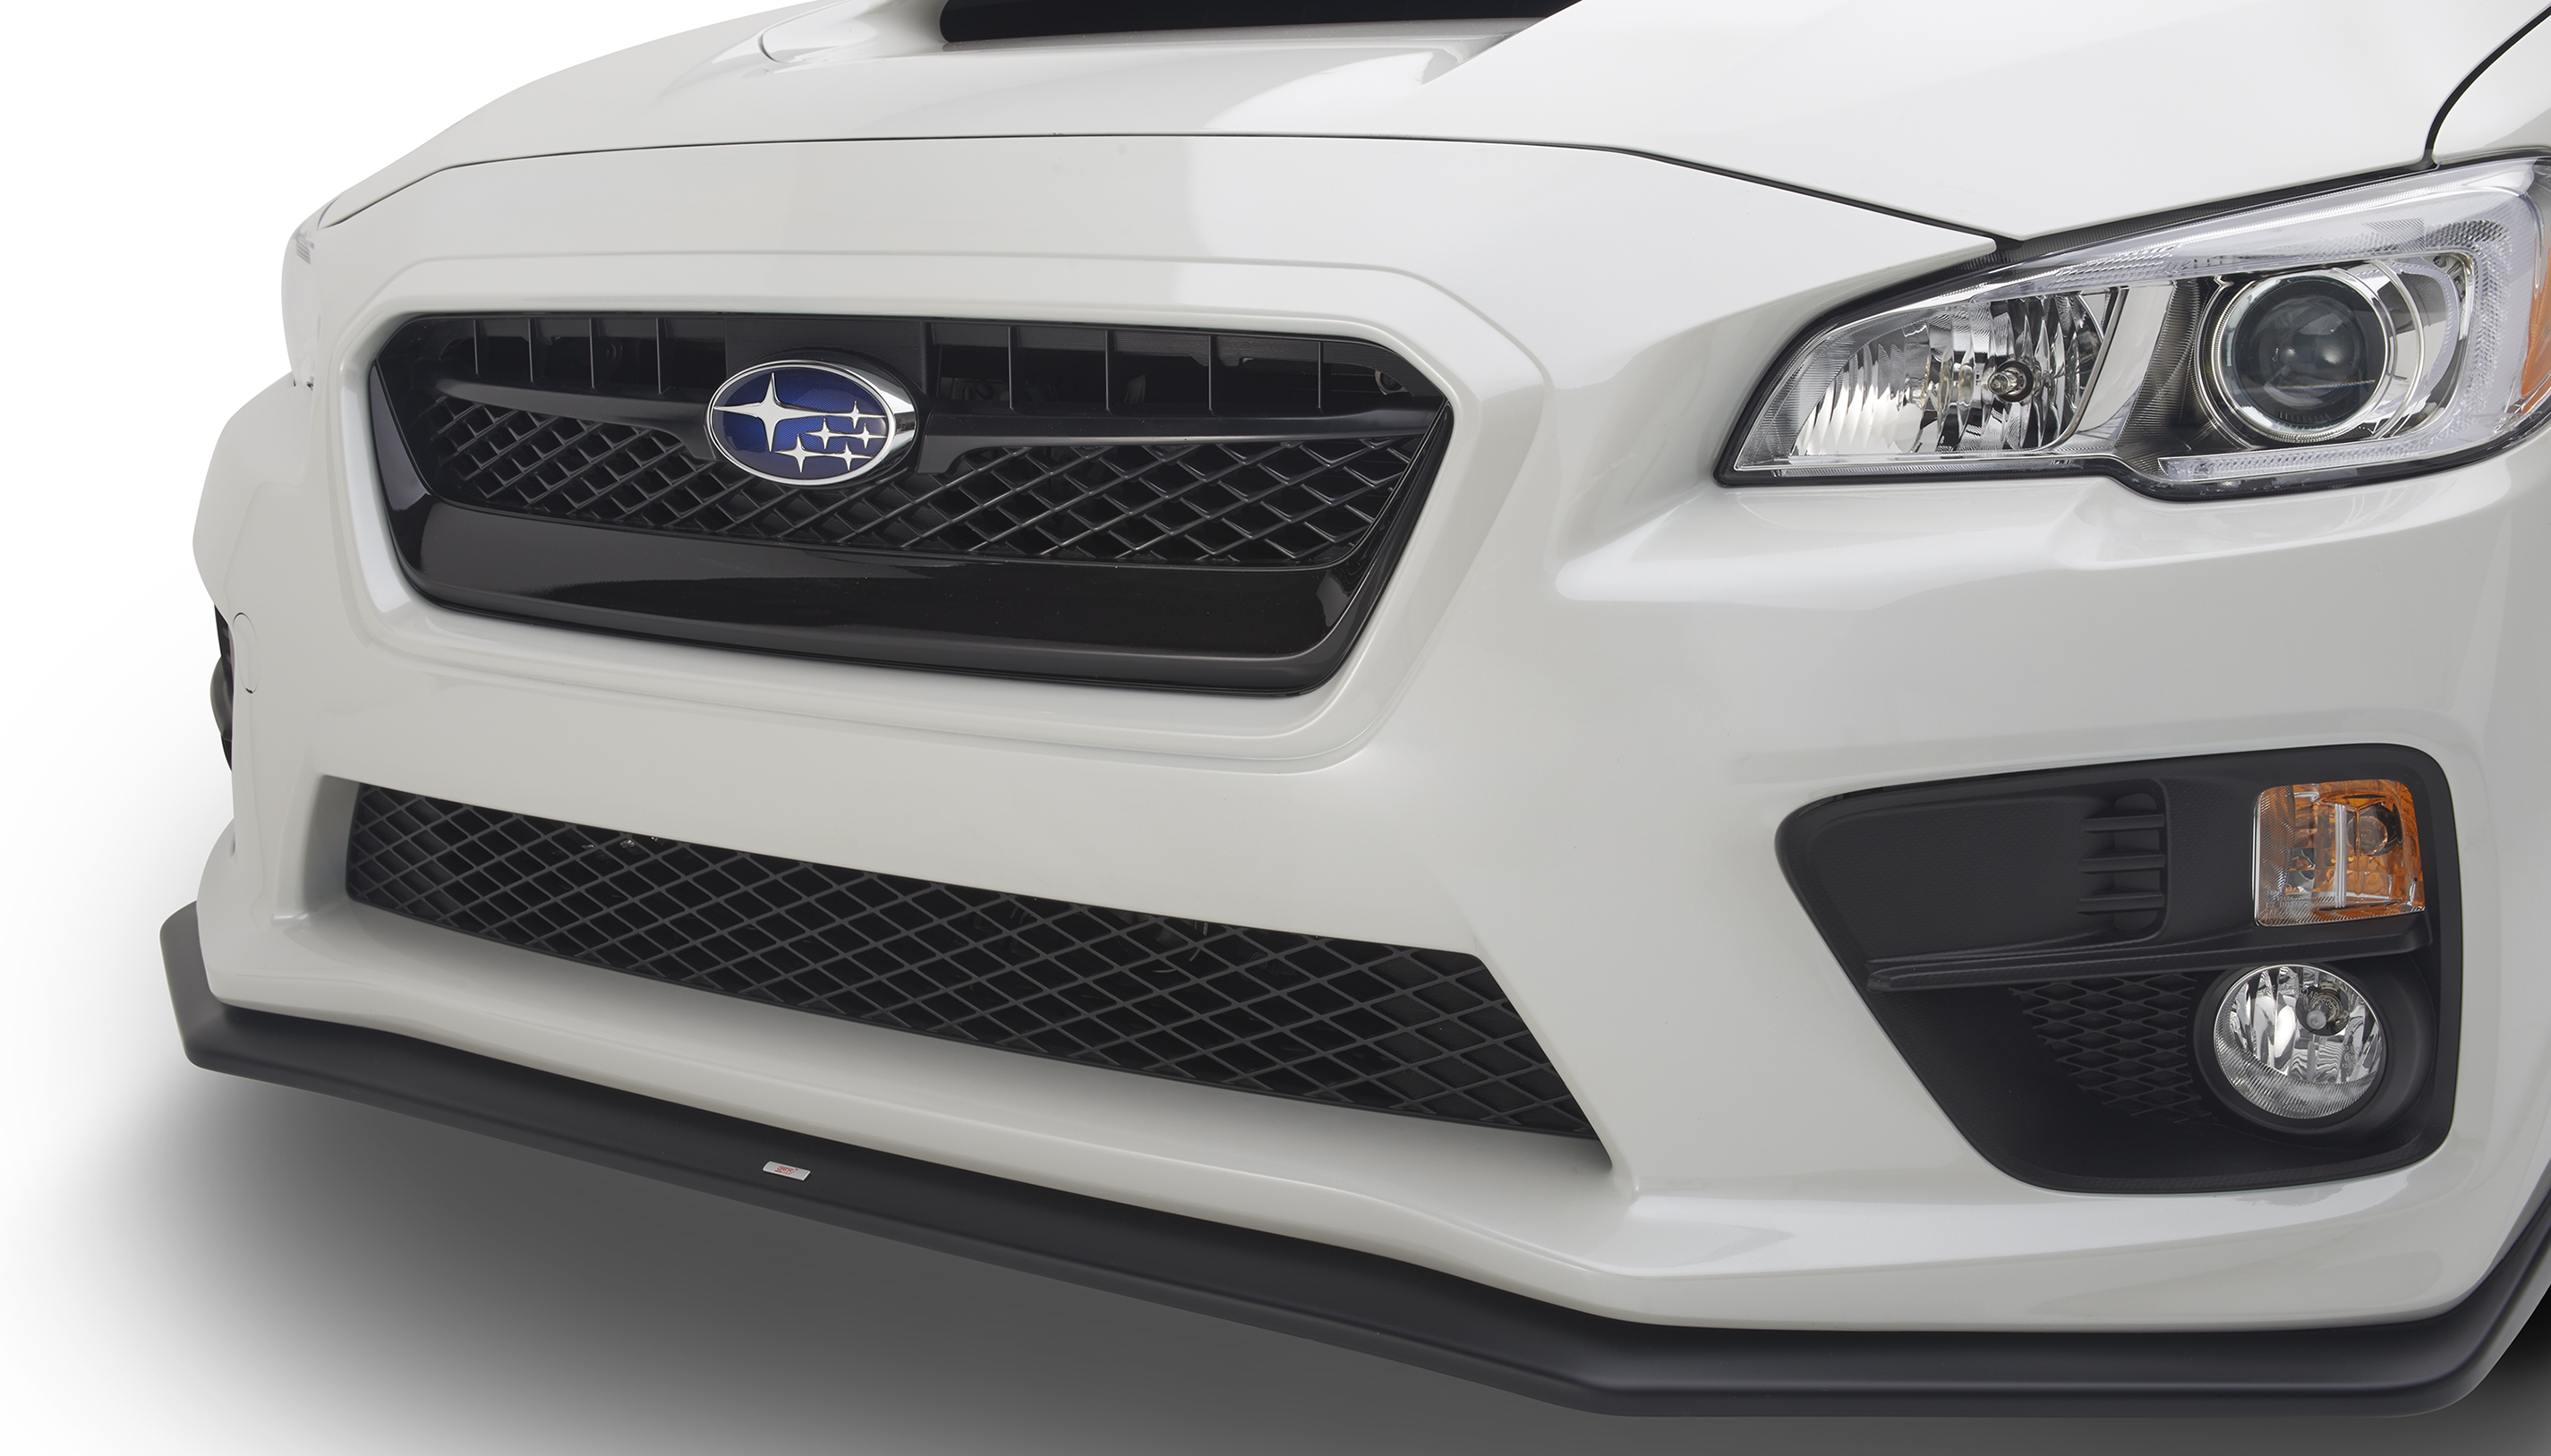 We stock a wide selection of OEM parts for your Subaru and Volkswagen to continue the journey and performance of your vehicle.